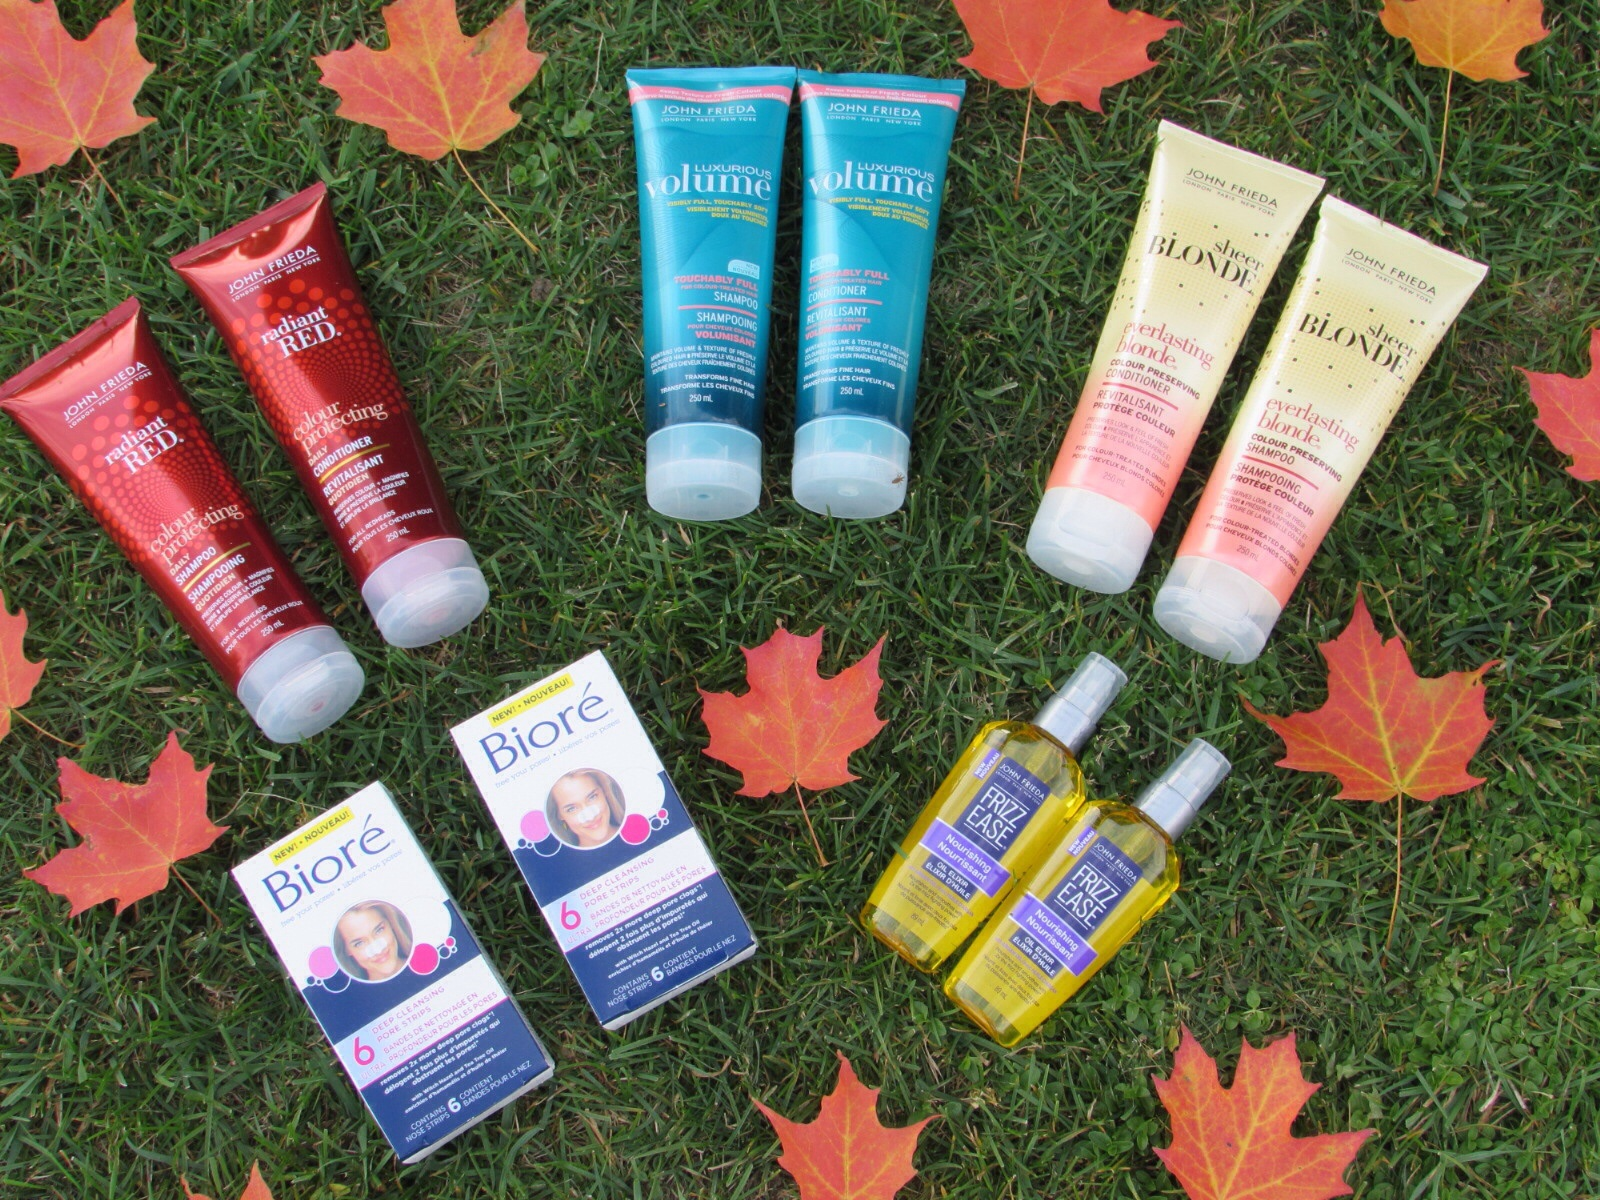 sparkleshinylove-Summer-recovery-kit-giveaway